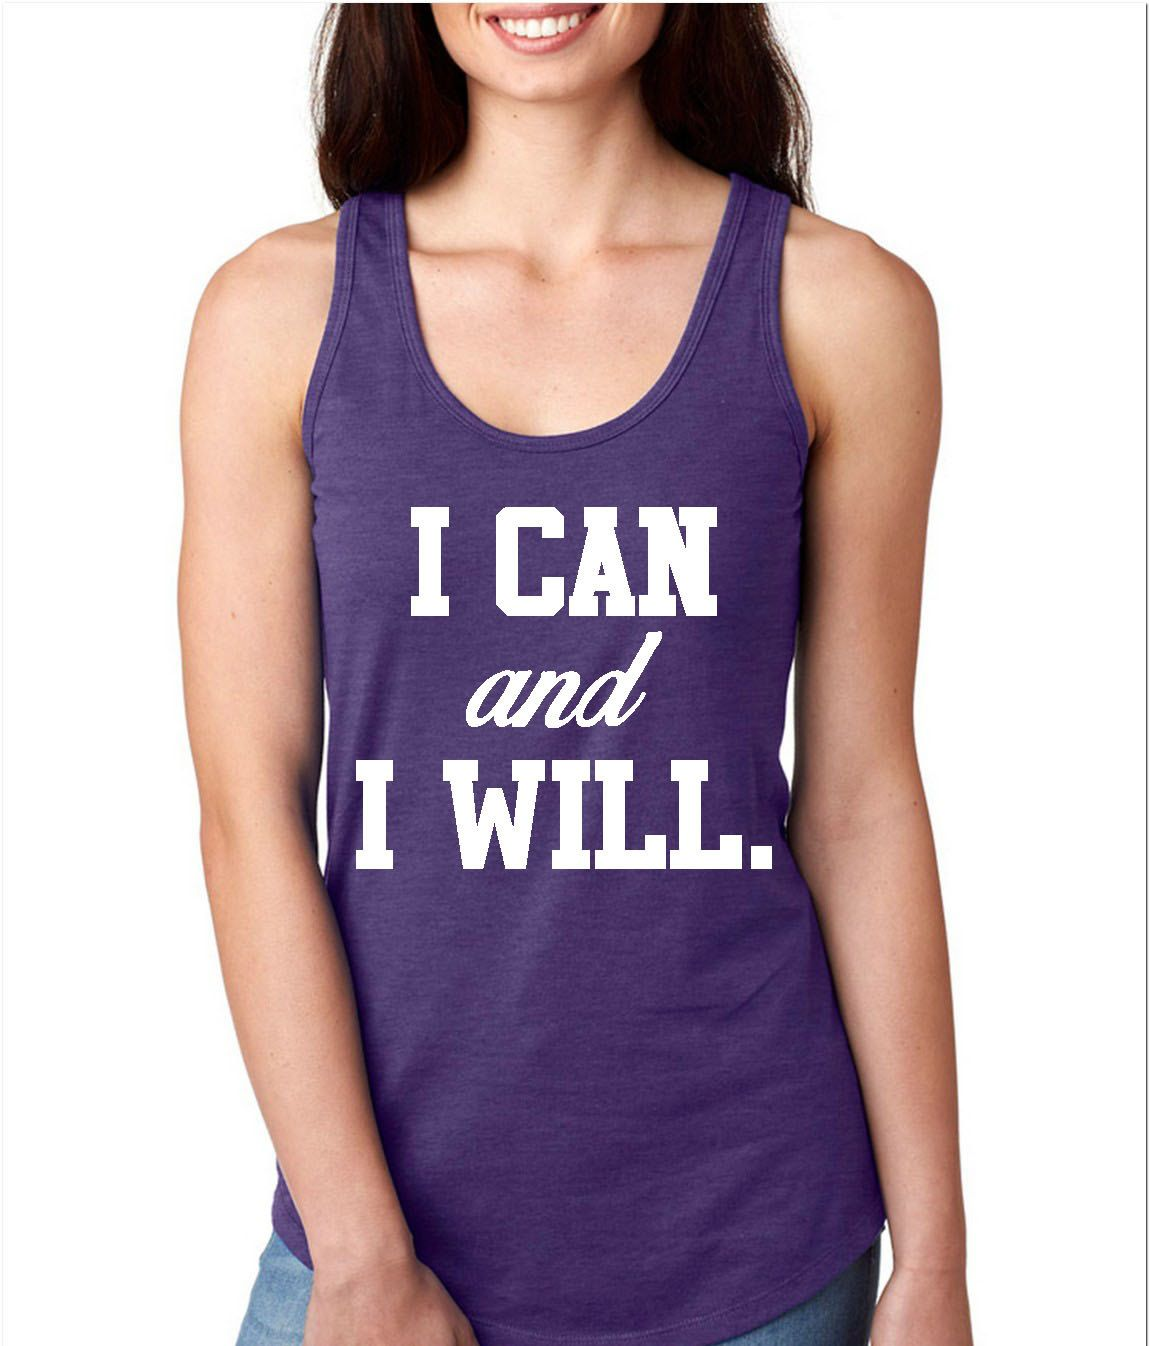 I Can And I Will Racerback Gym Tank Workout Tank Gym Tank by WildWindApparel on Etsy